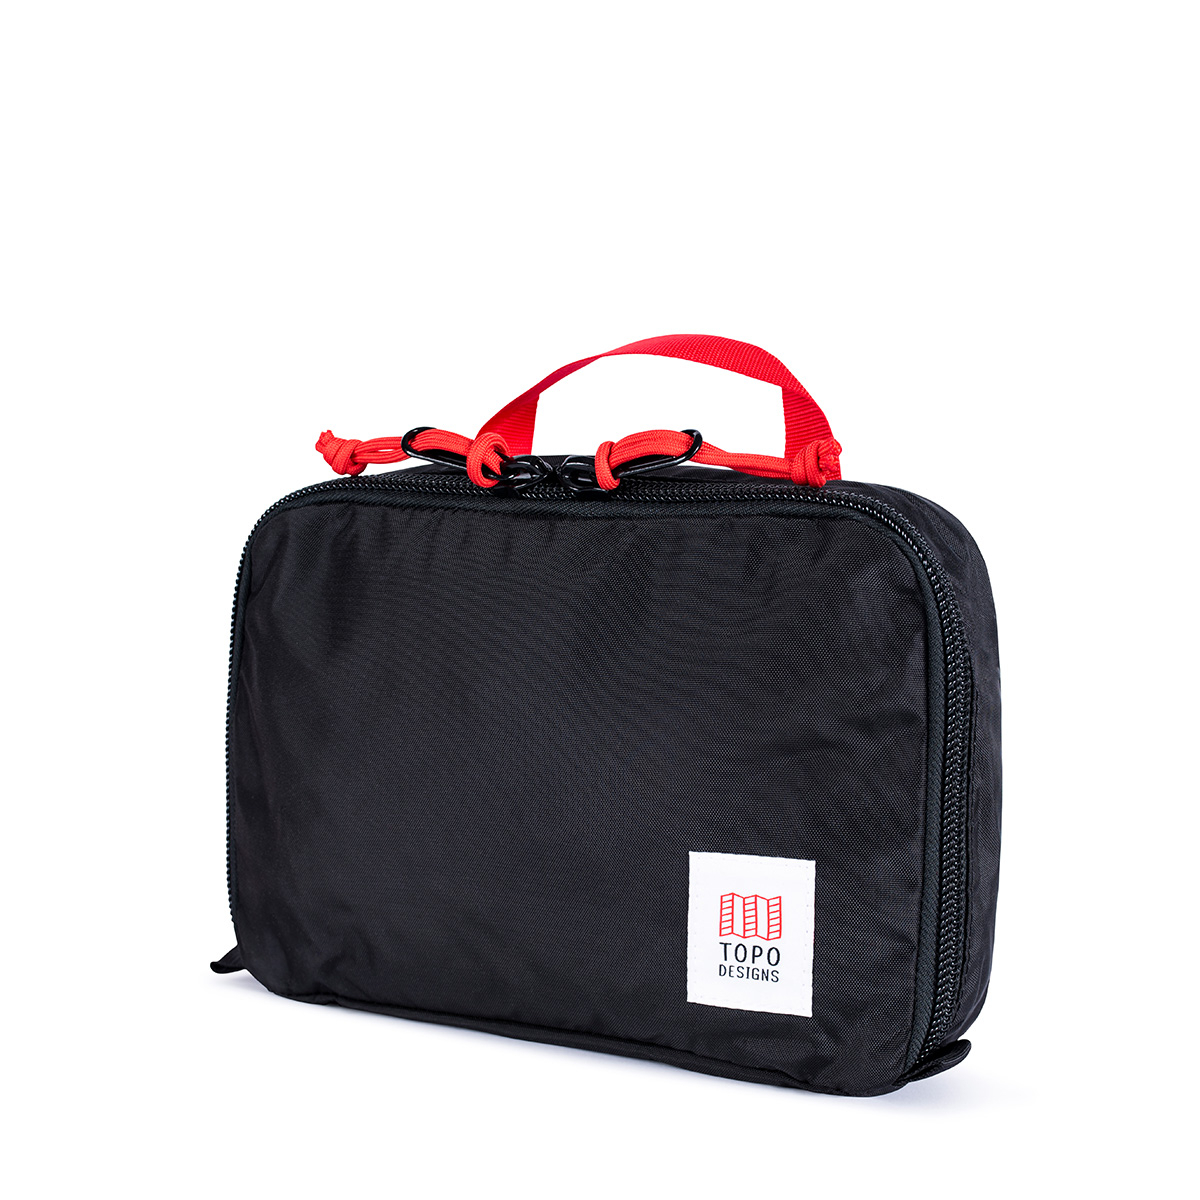 Topo Designs Pack Bag 5L Black